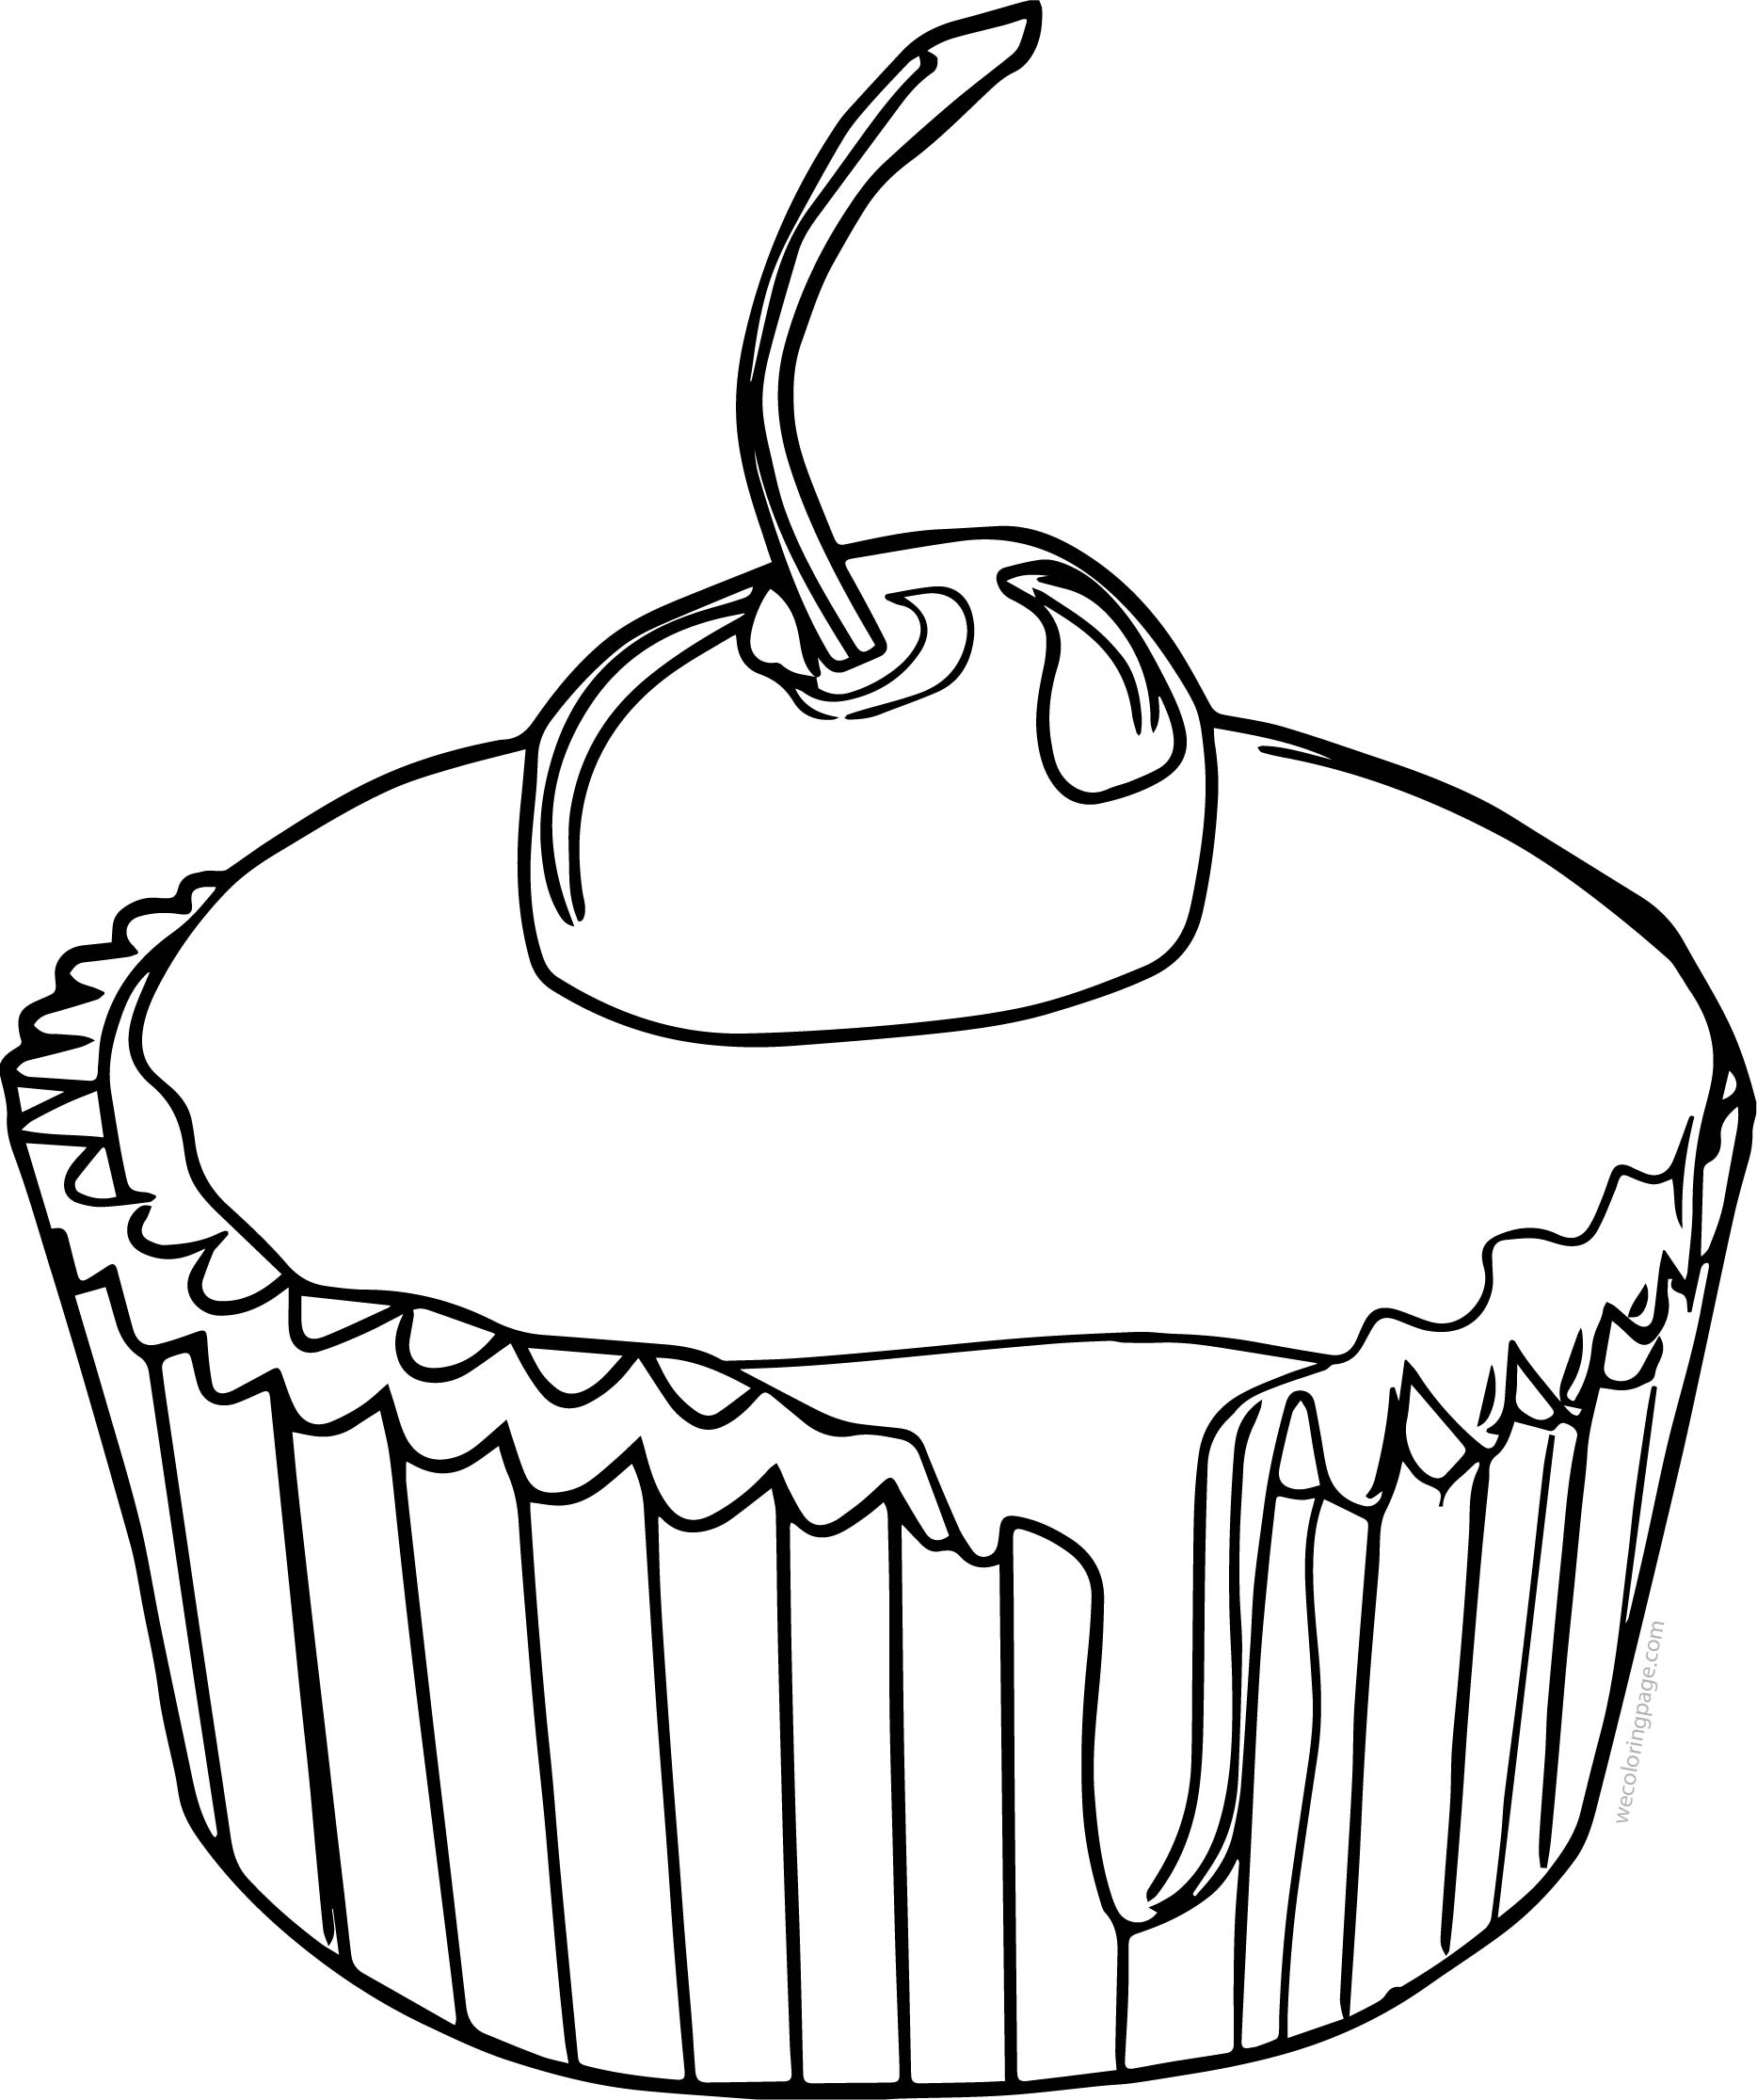 Drawing Cupcake Cup Cake Cherry Coloring Page